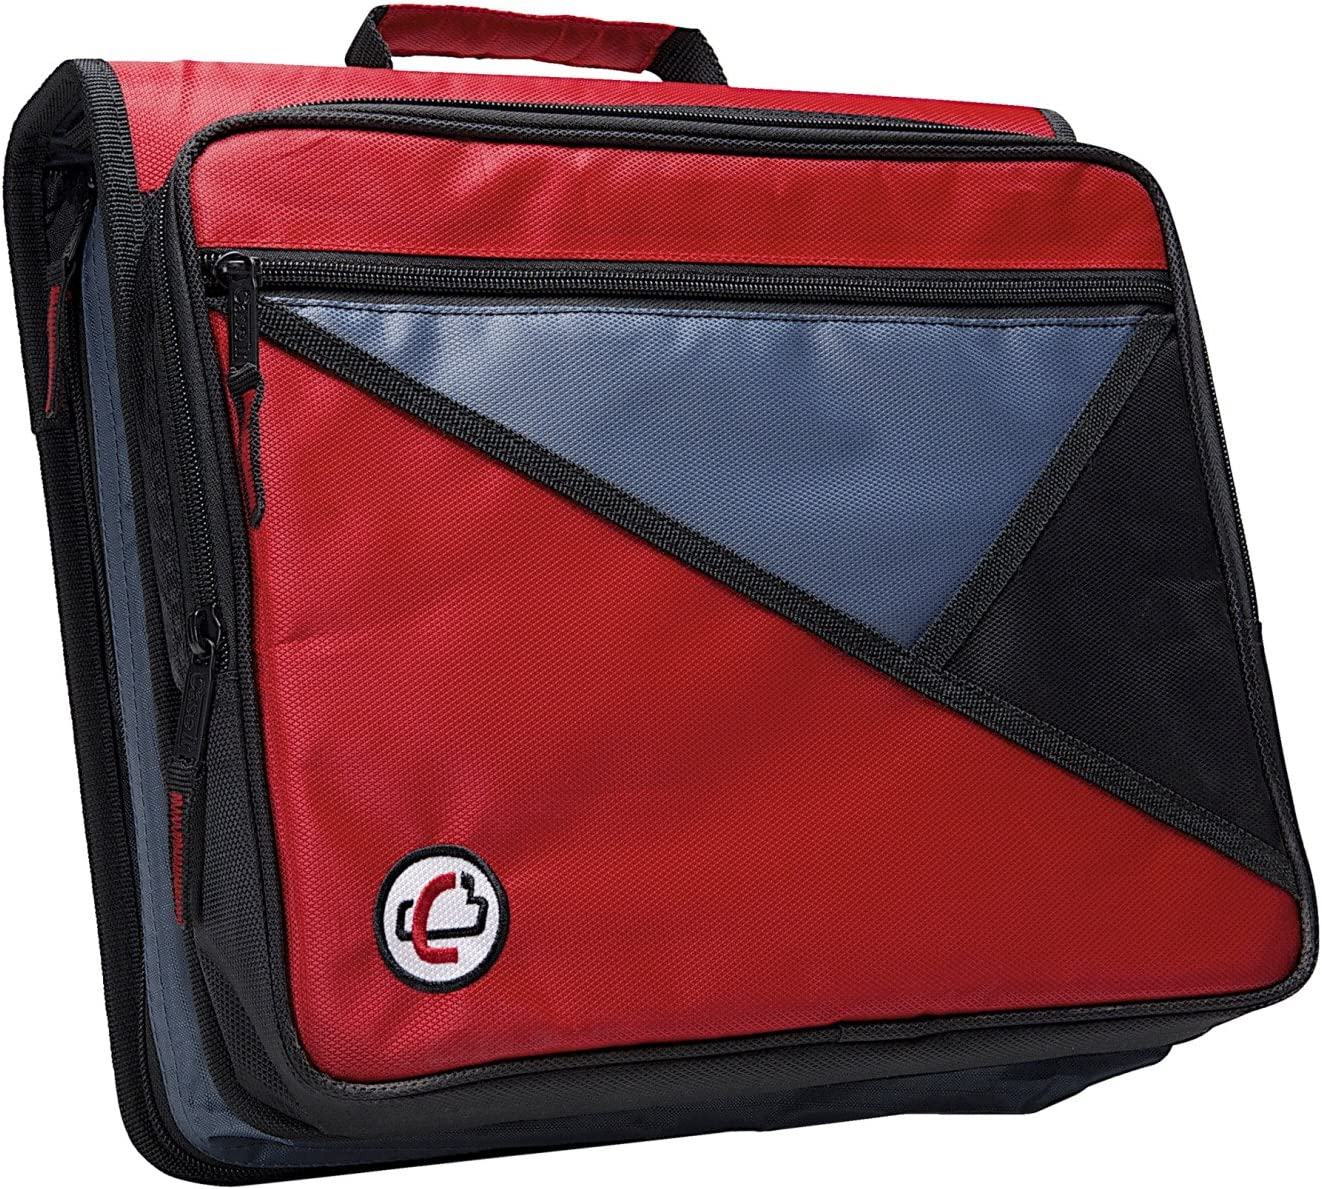 Case-it Universal 2-Inch 3-Ring Zipper Binder, Holds 13 Inch Laptop, Red, LT-007-RED